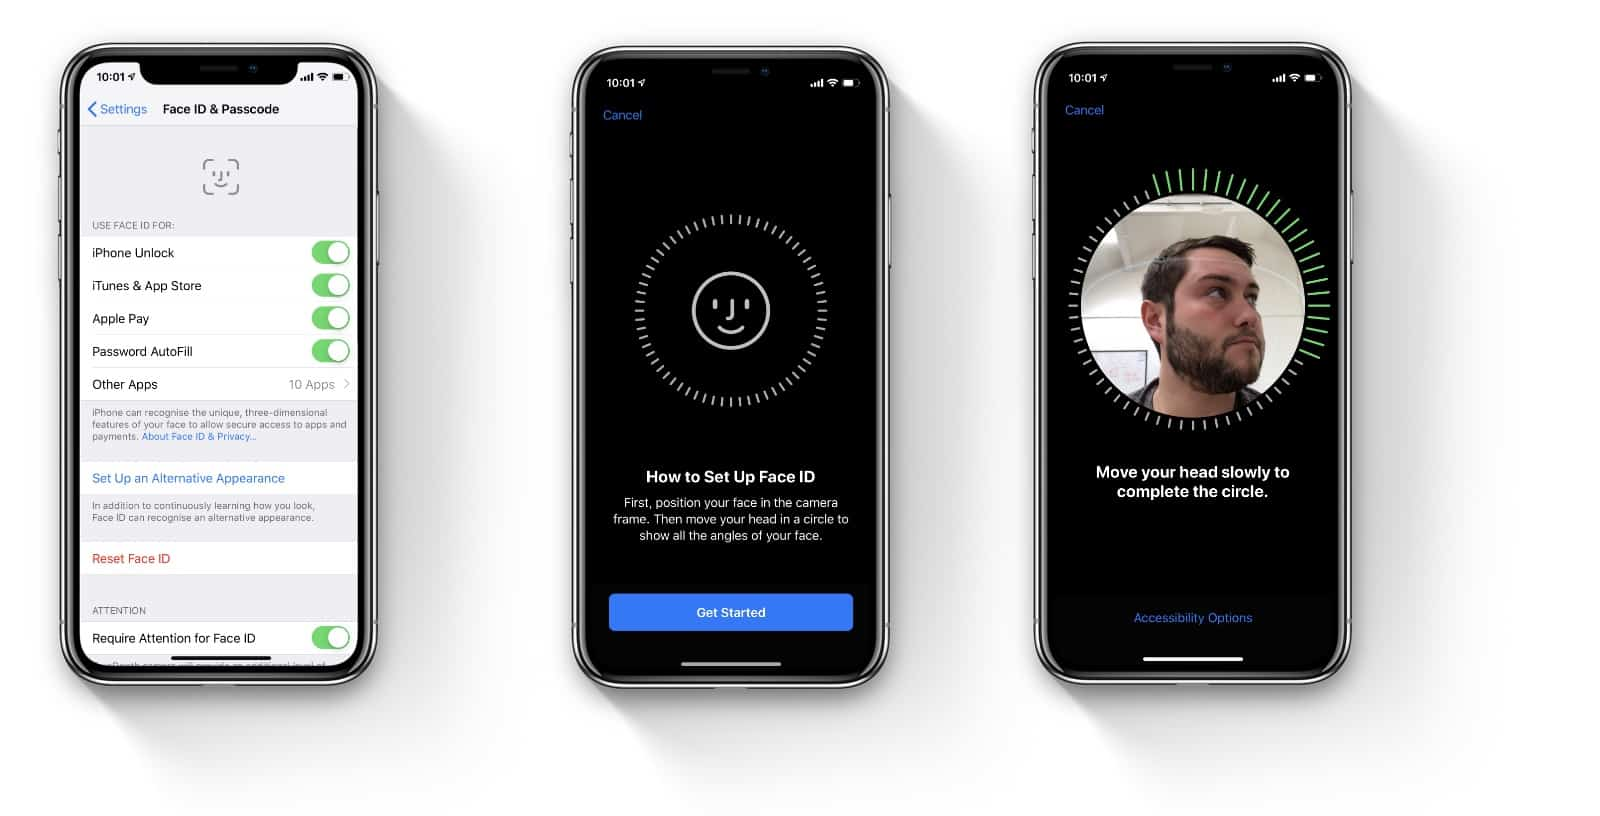 iOS - Face ID alternate appearance